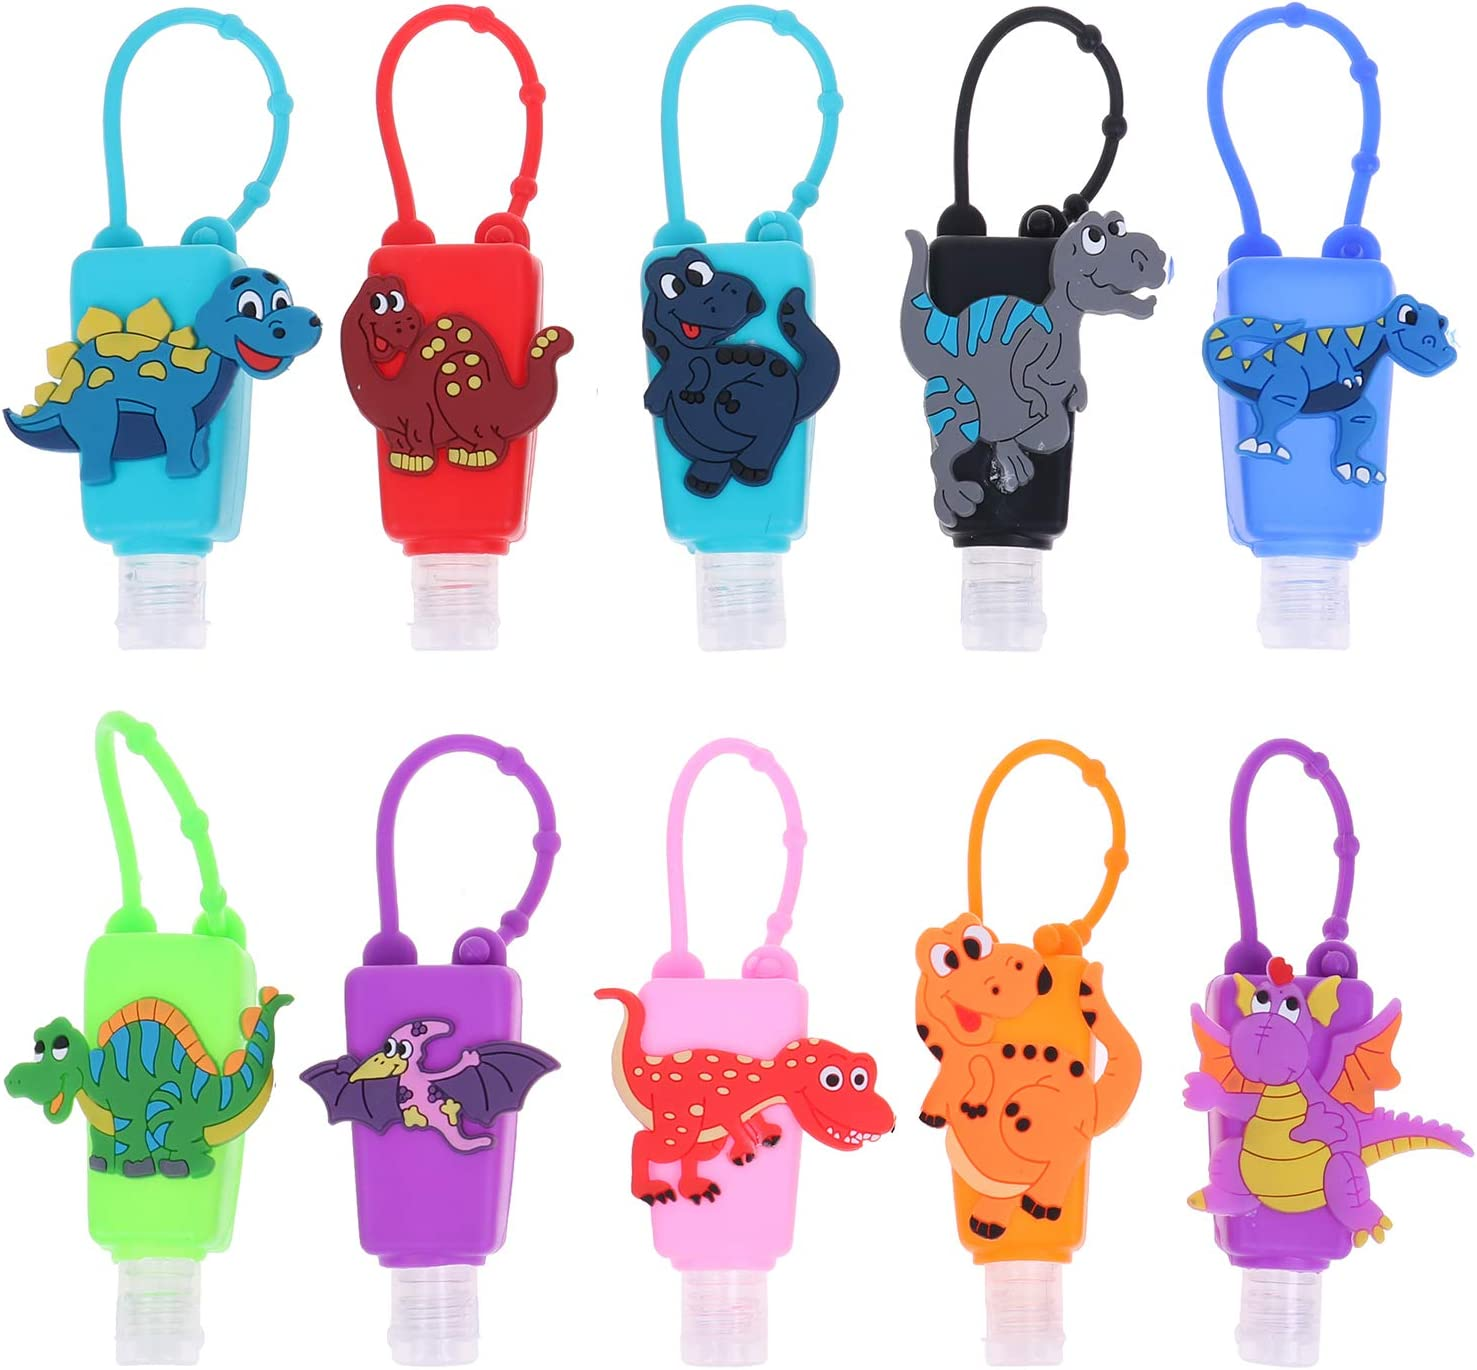 Cow Print Hand Sanitizer Key Ring Holder with 30ml Bottle